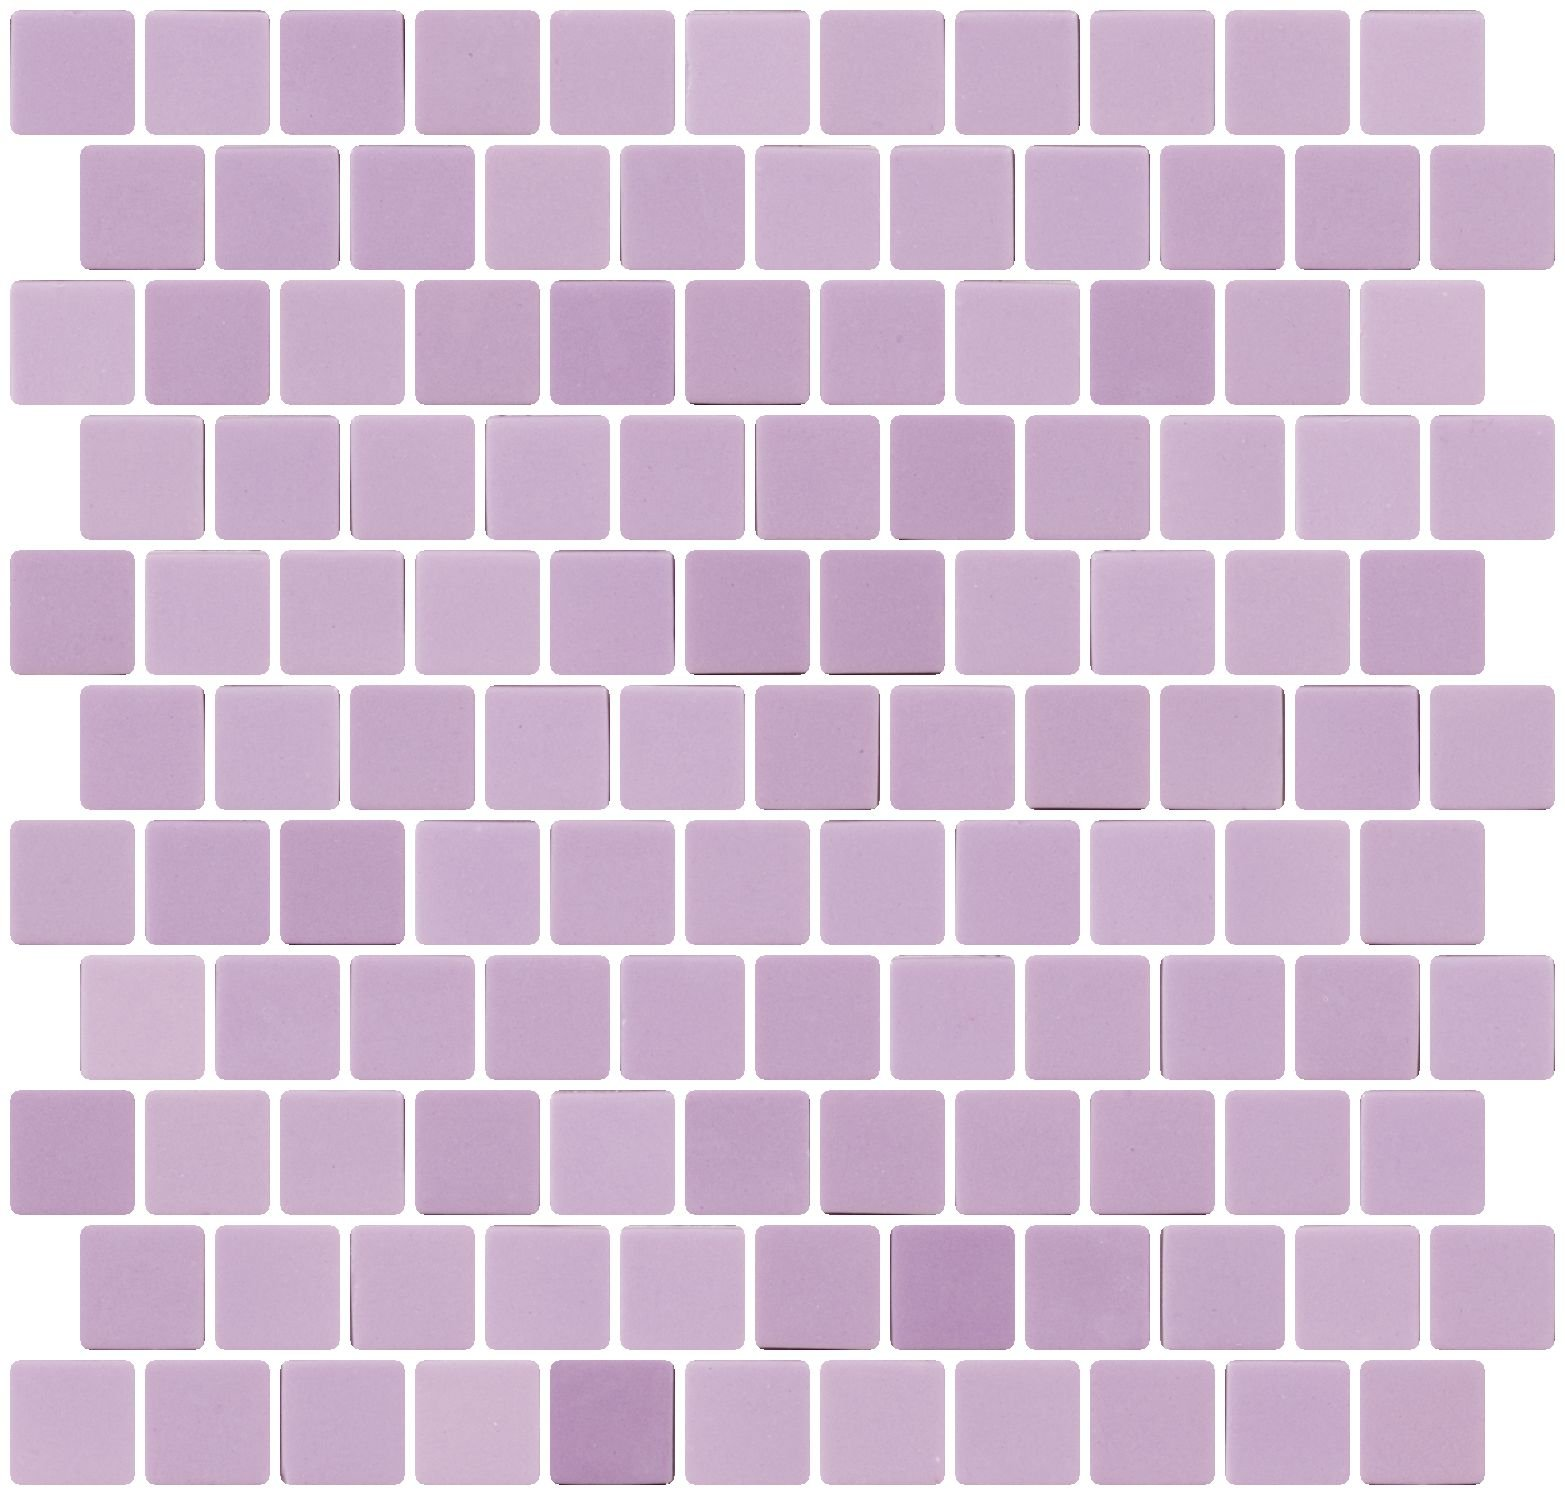 Susan Jablon Mosaics - 1 Inch Lilac Purple Recycled Glass Tile Reset In Offset Layout